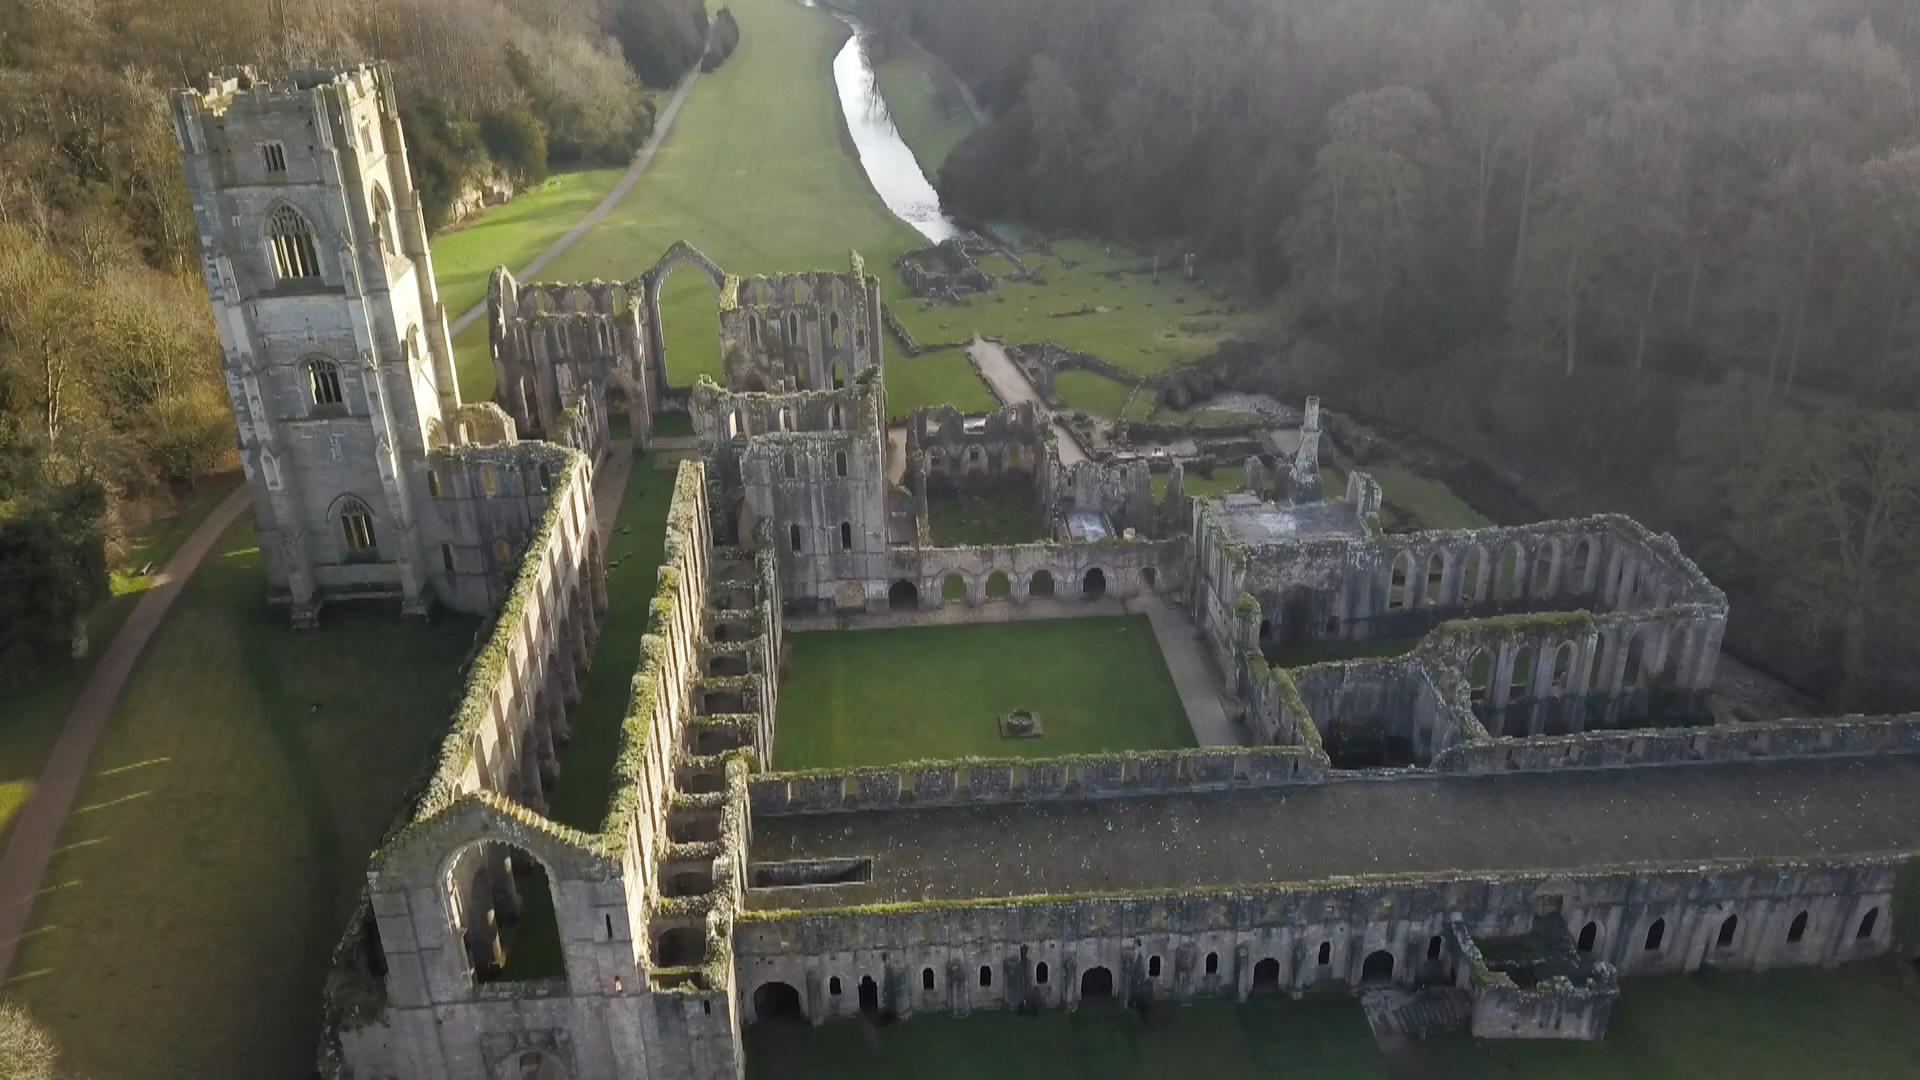 National Trust says heritage sites at risk from climate change - channel 4